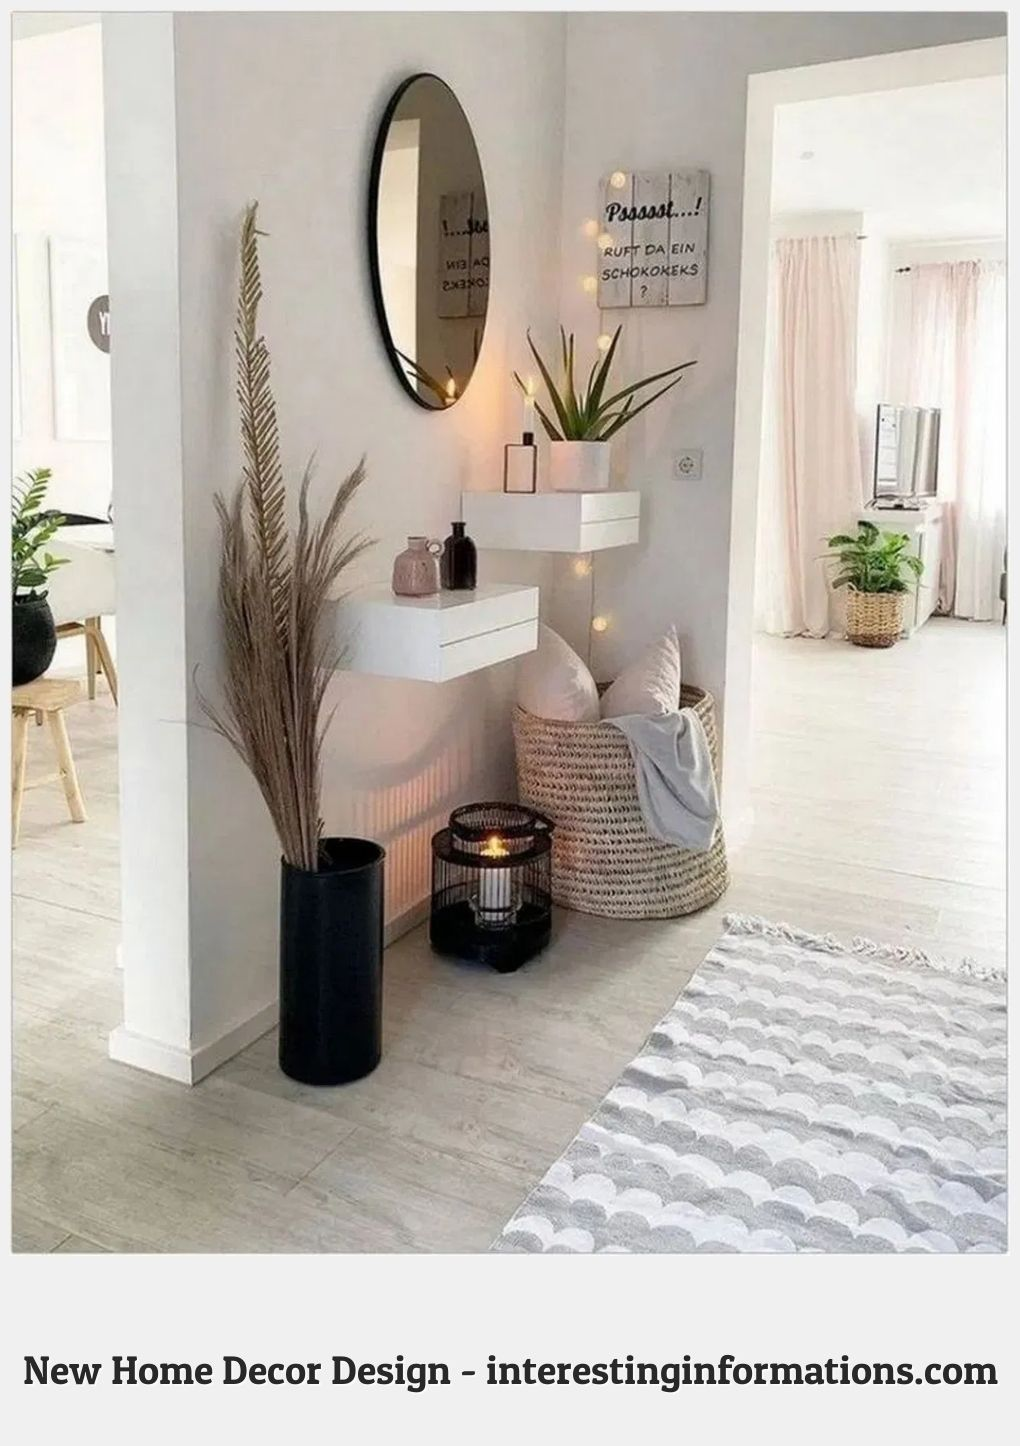 Entryway Decor 73202 #d39entrée #décoration #entryw #entryway #entrywayideas, #d39entrée #décoration #entryw #entryway #entrywayideas..., #d39entrée #Decoration #diseñodedormitorio